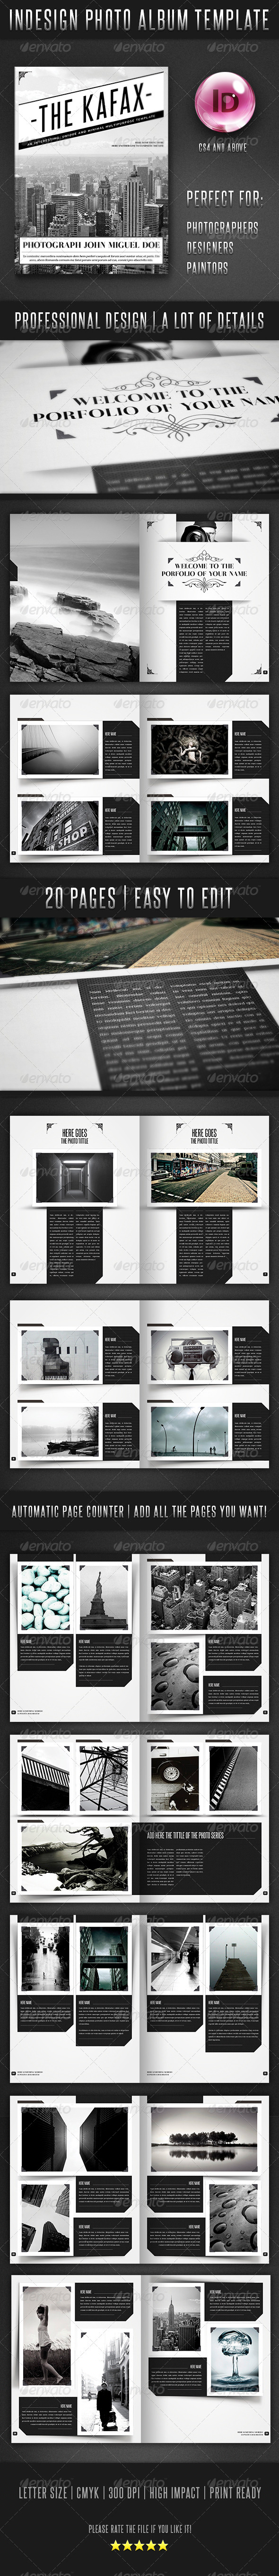 GraphicRiver Design Photo Album Template 3766144